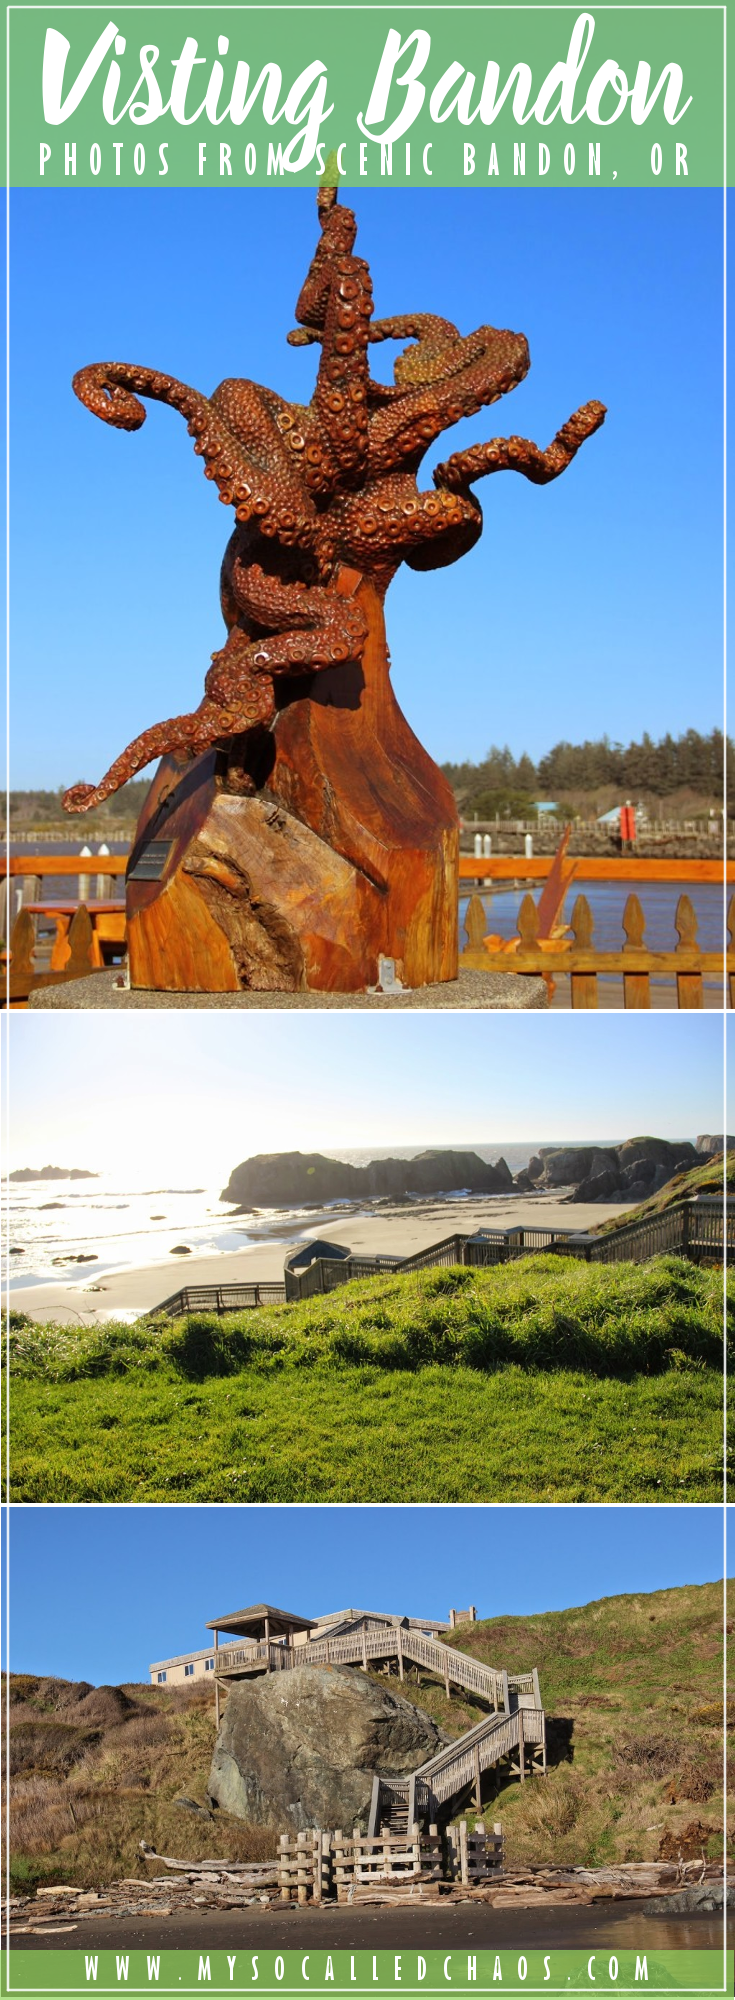 Photos from Scenic Bandon, OR